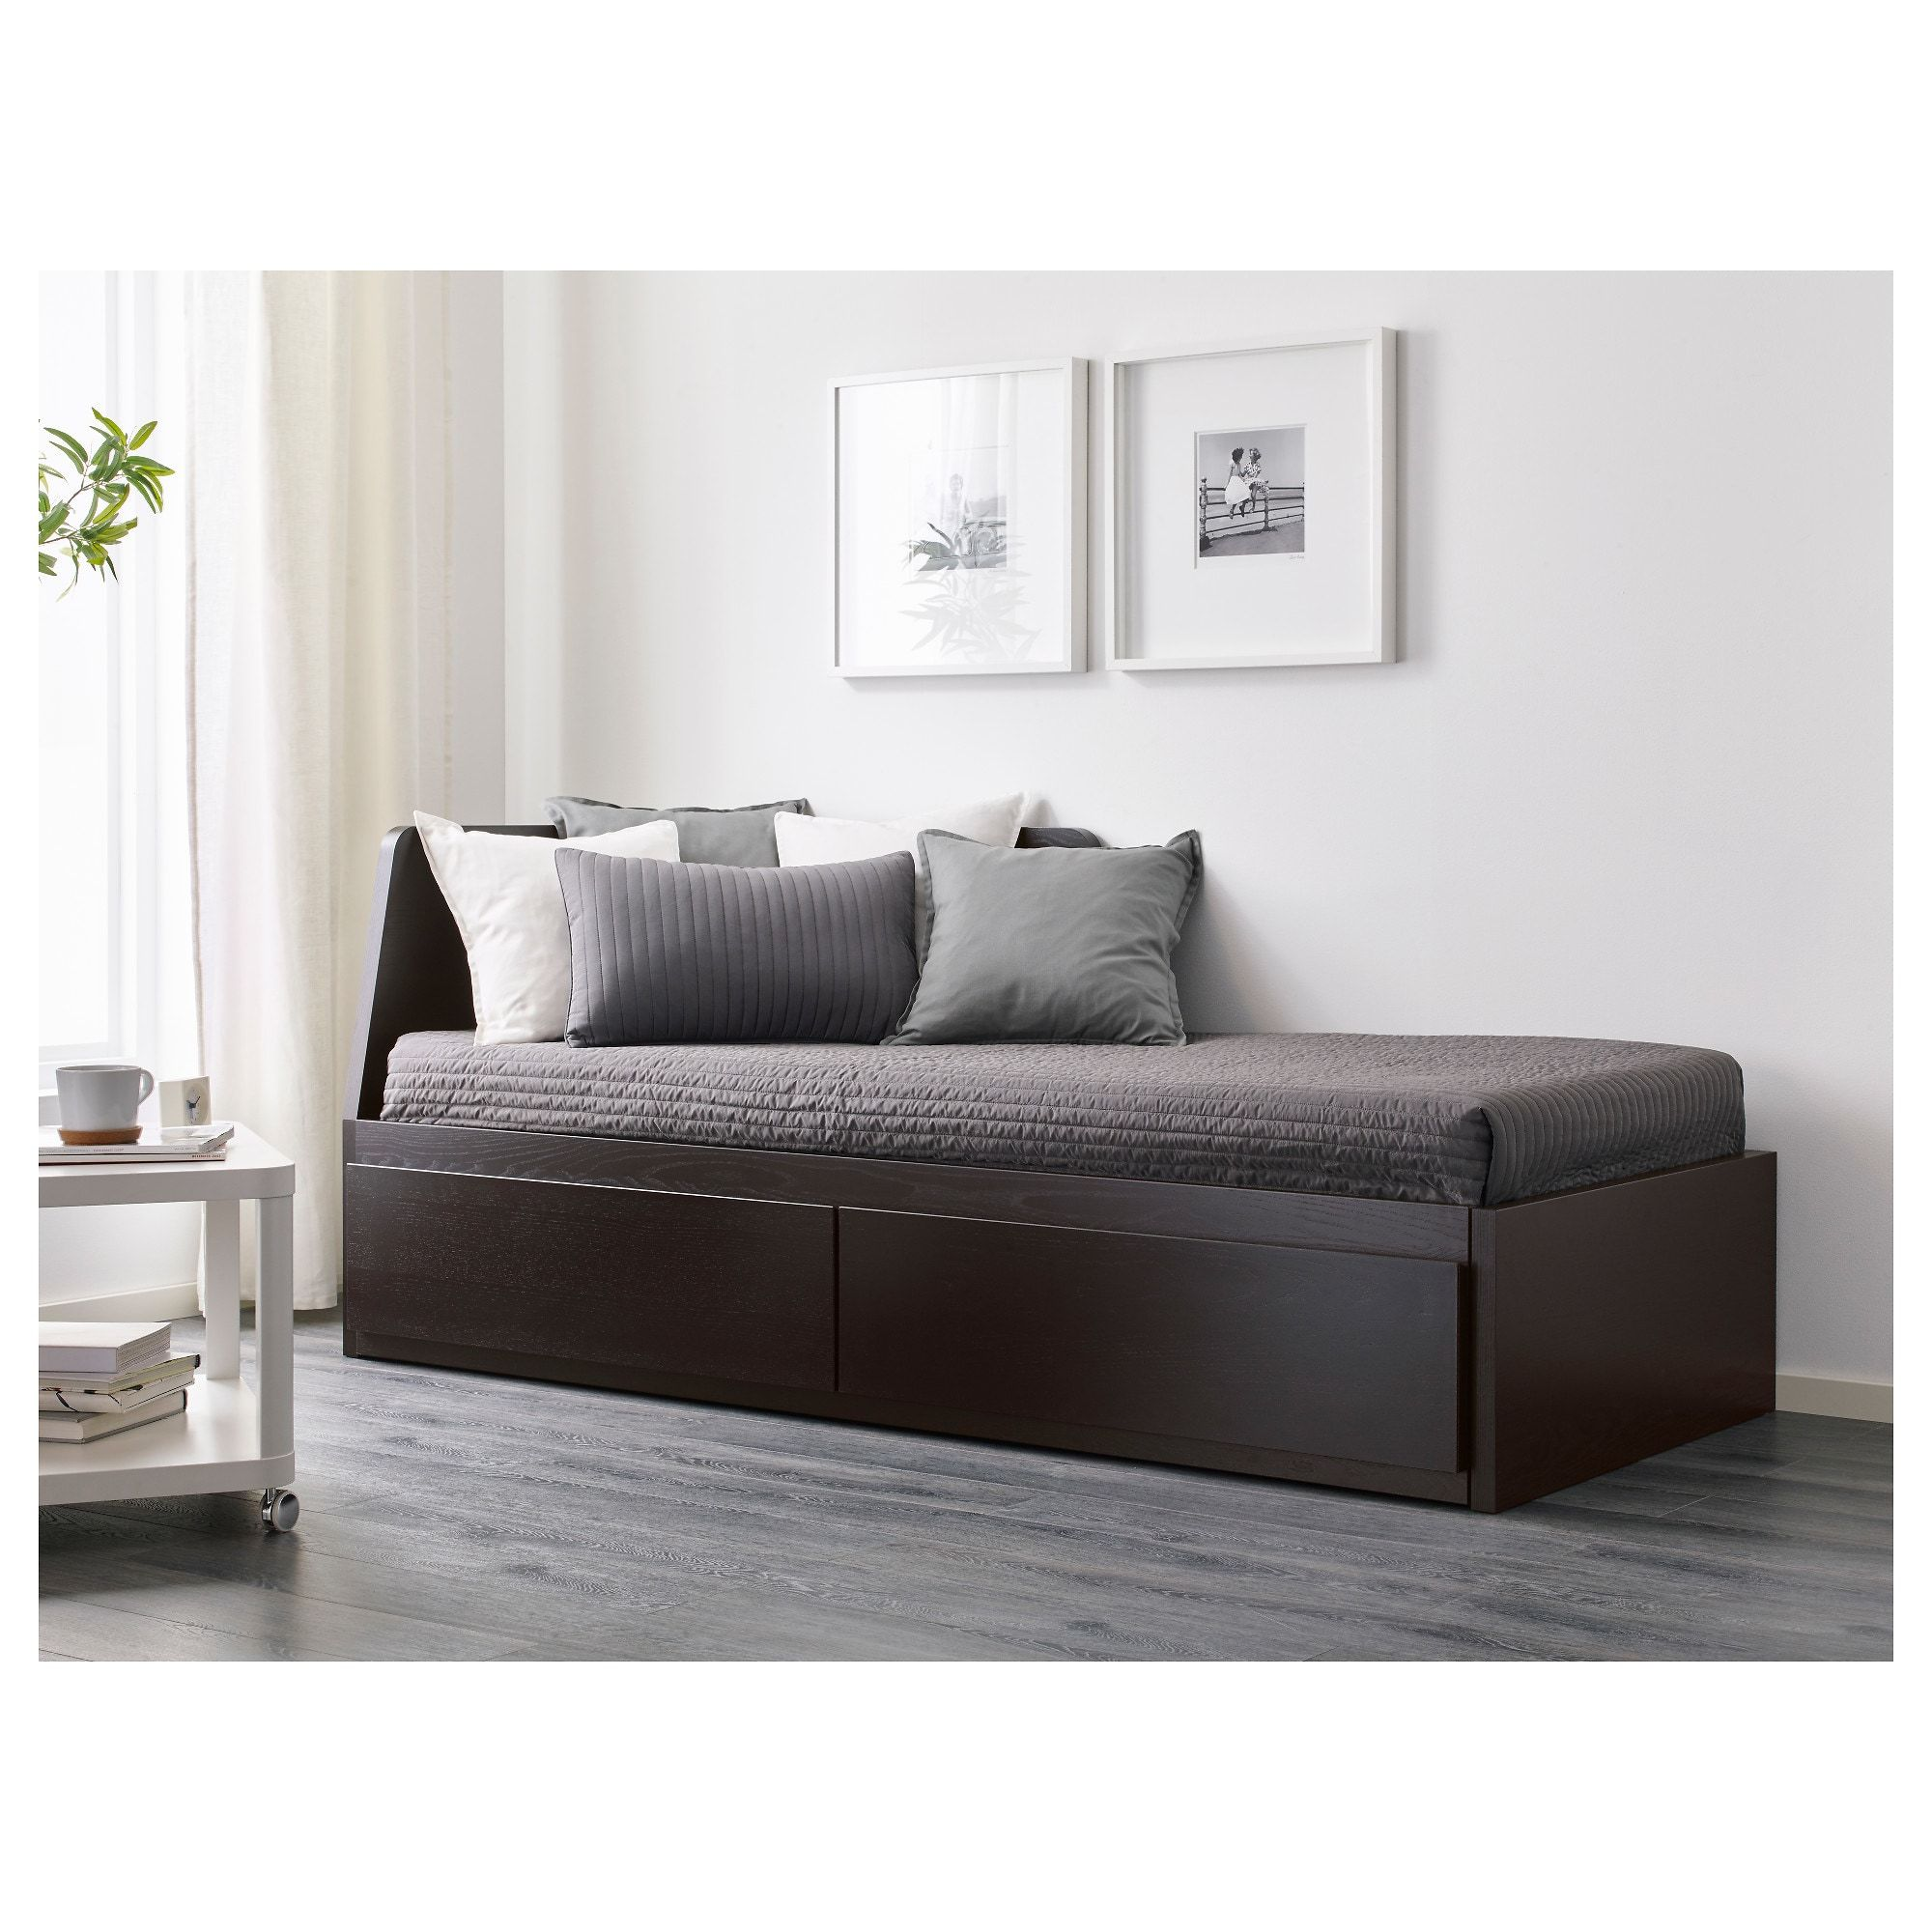 Flekke Daybed Frame With 2 Drawers Black Brown Twin Ikea